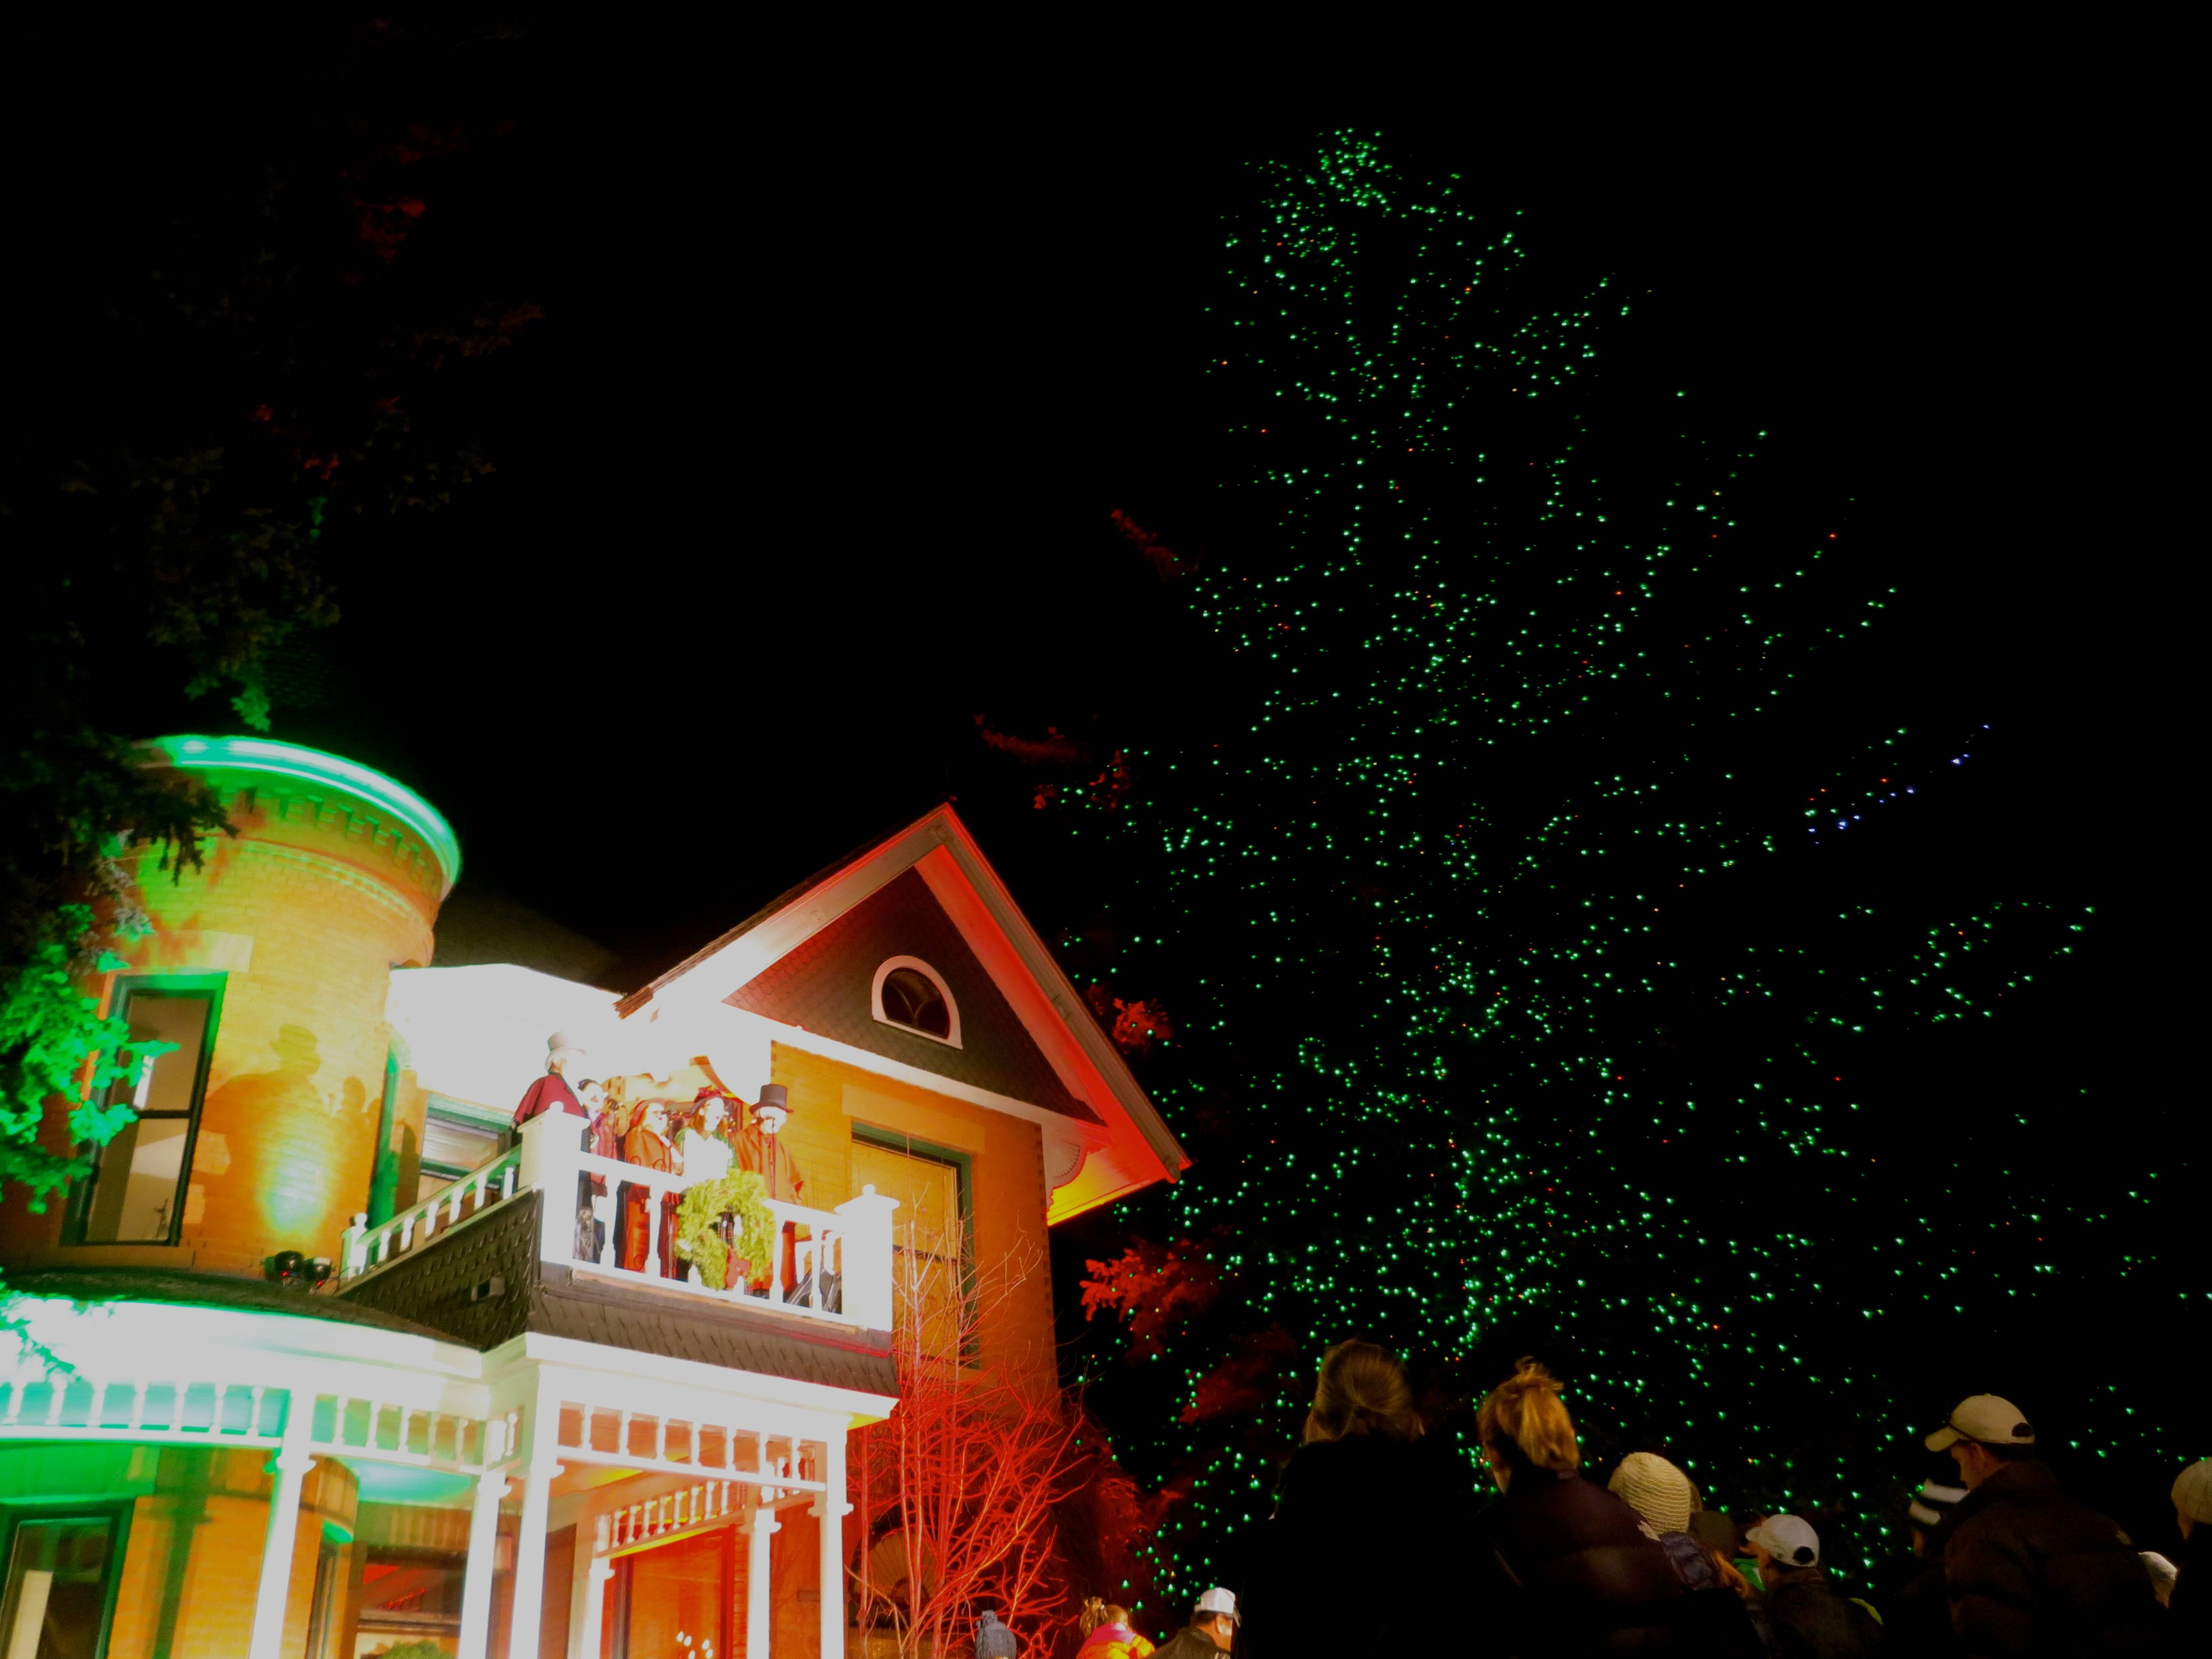 The Sardy House and holiday tree.